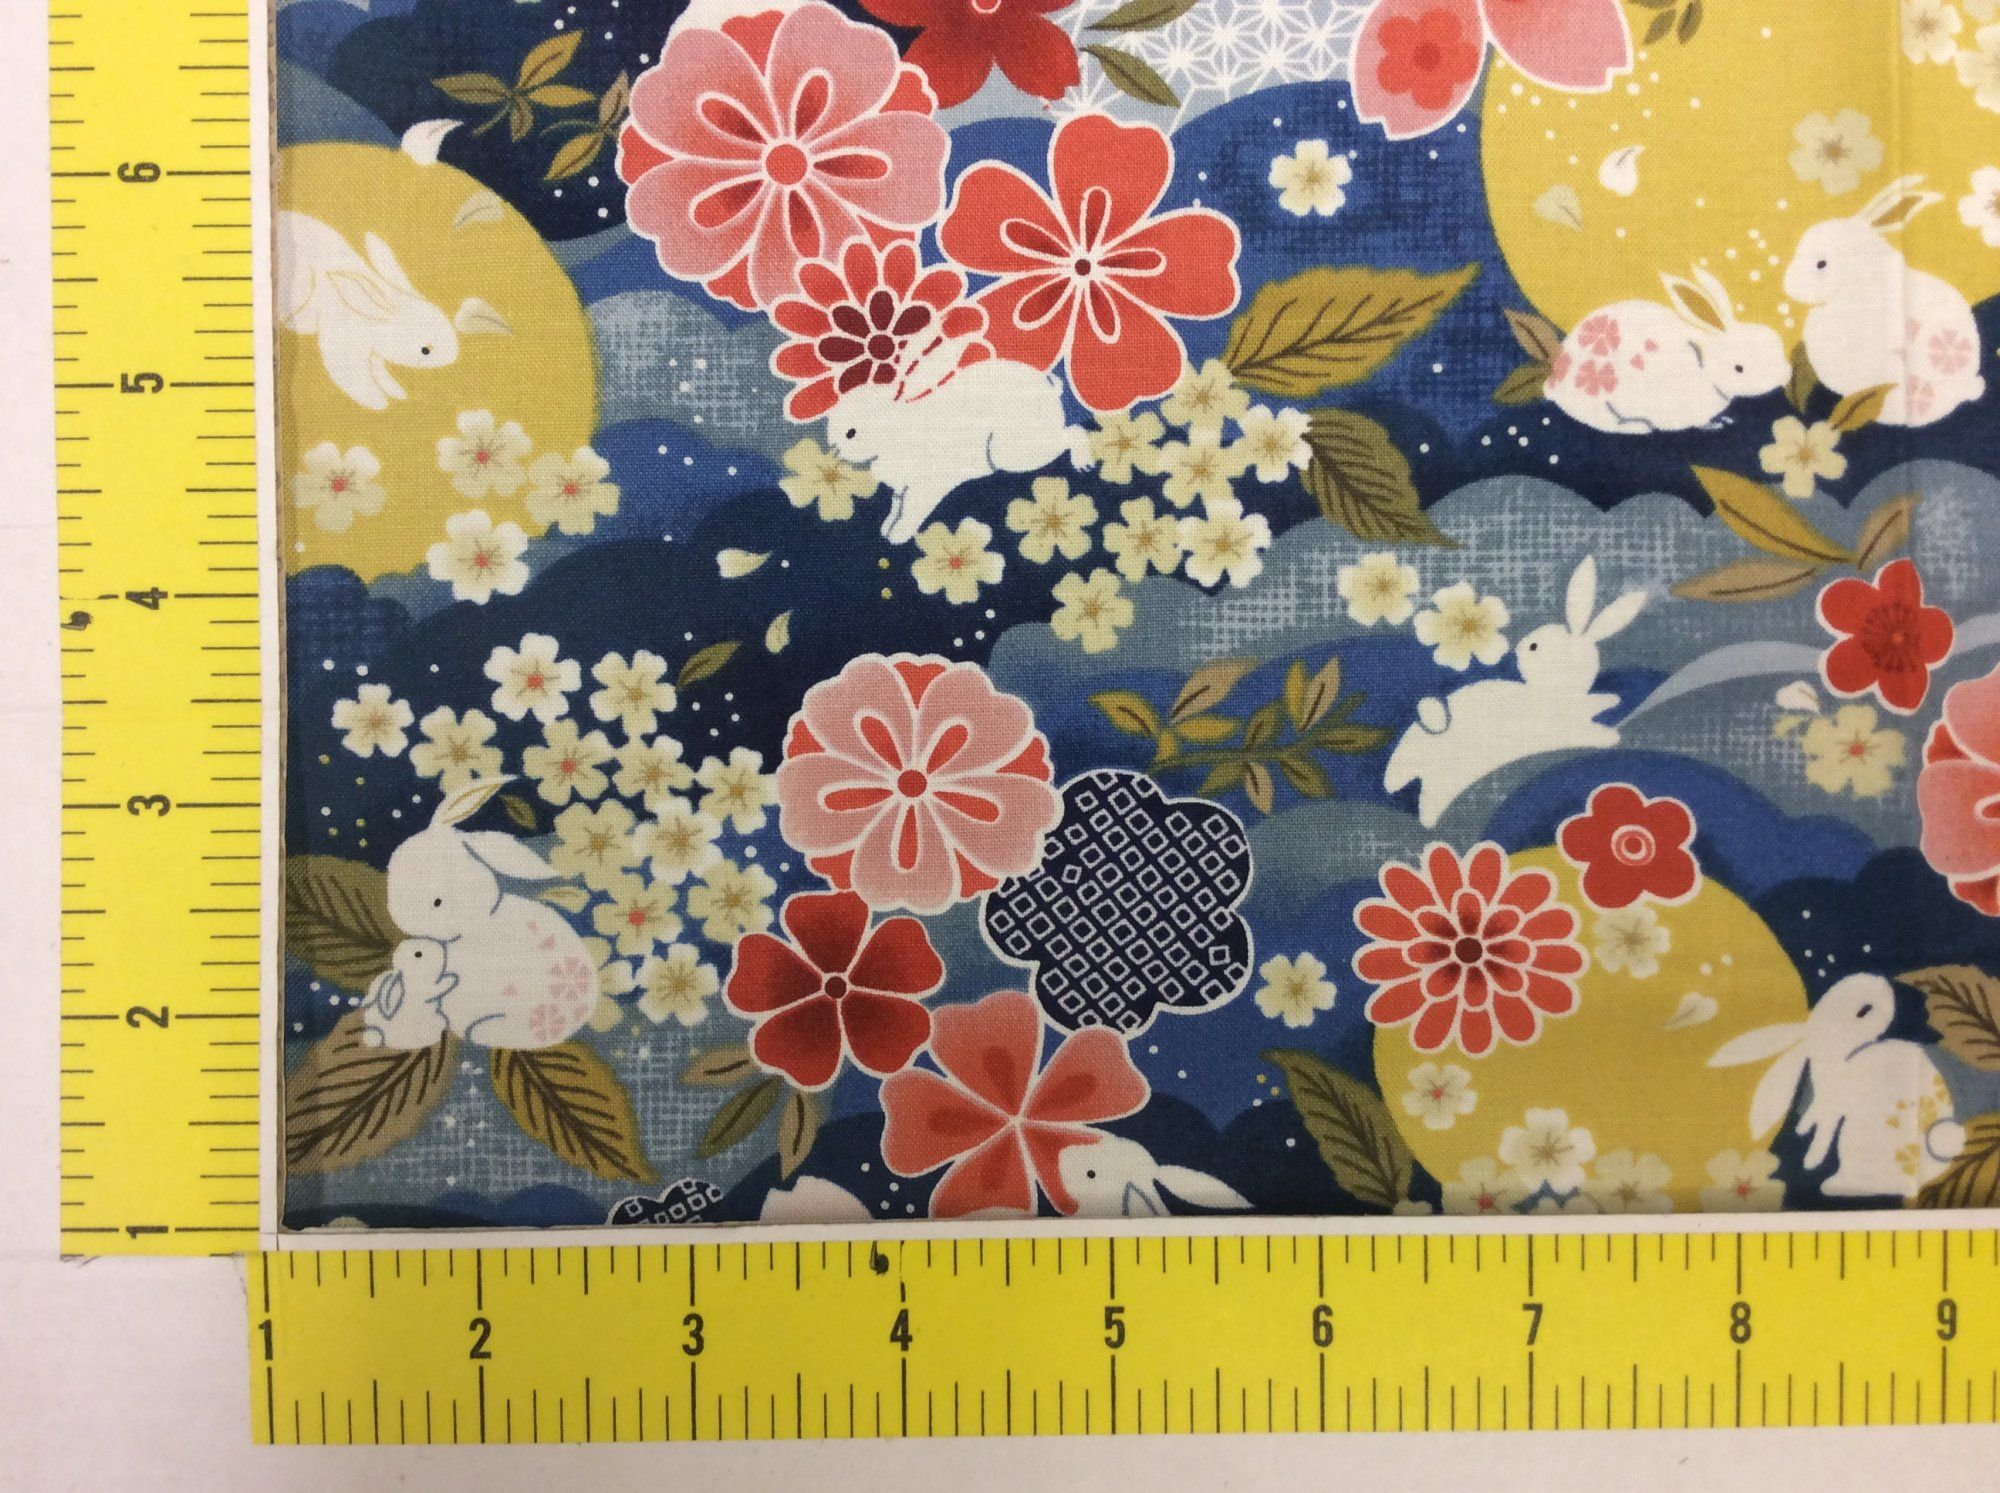 Moon Garden Bunny Rabbit Asian Japanese Style Cotton Quilt Fabric